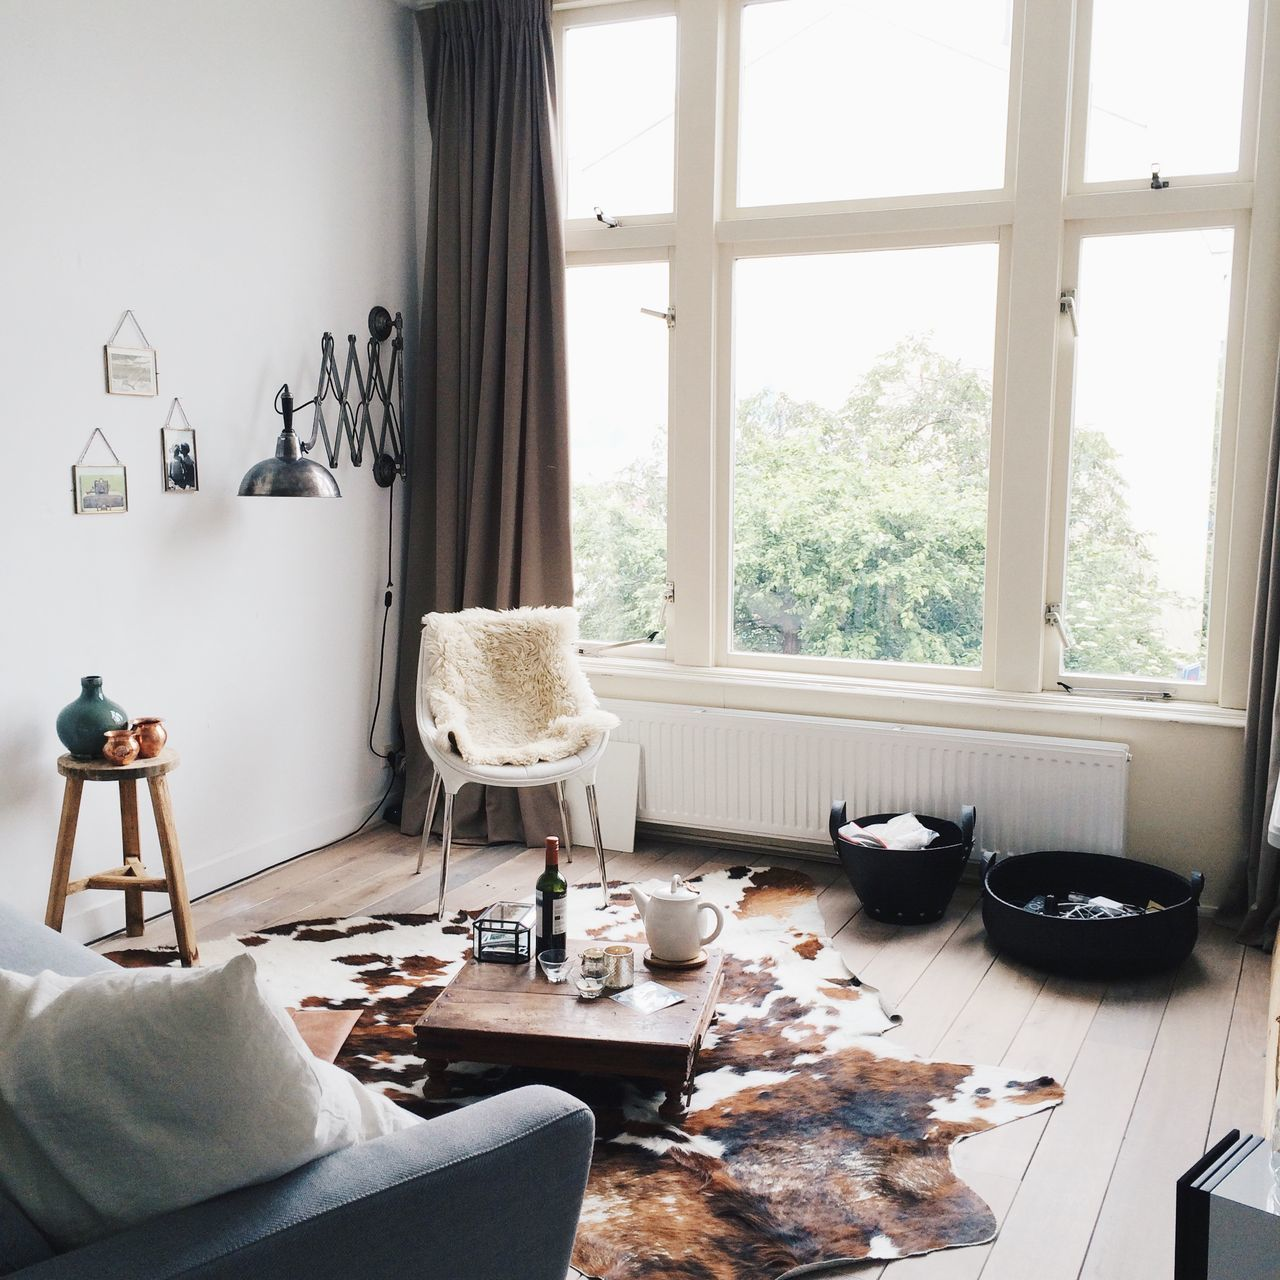 AirBnB Amsterdam Comfort Place Domestic Life Dream Catcher Fur Home Home Interior Indoors  Interior Design Weekend Chill